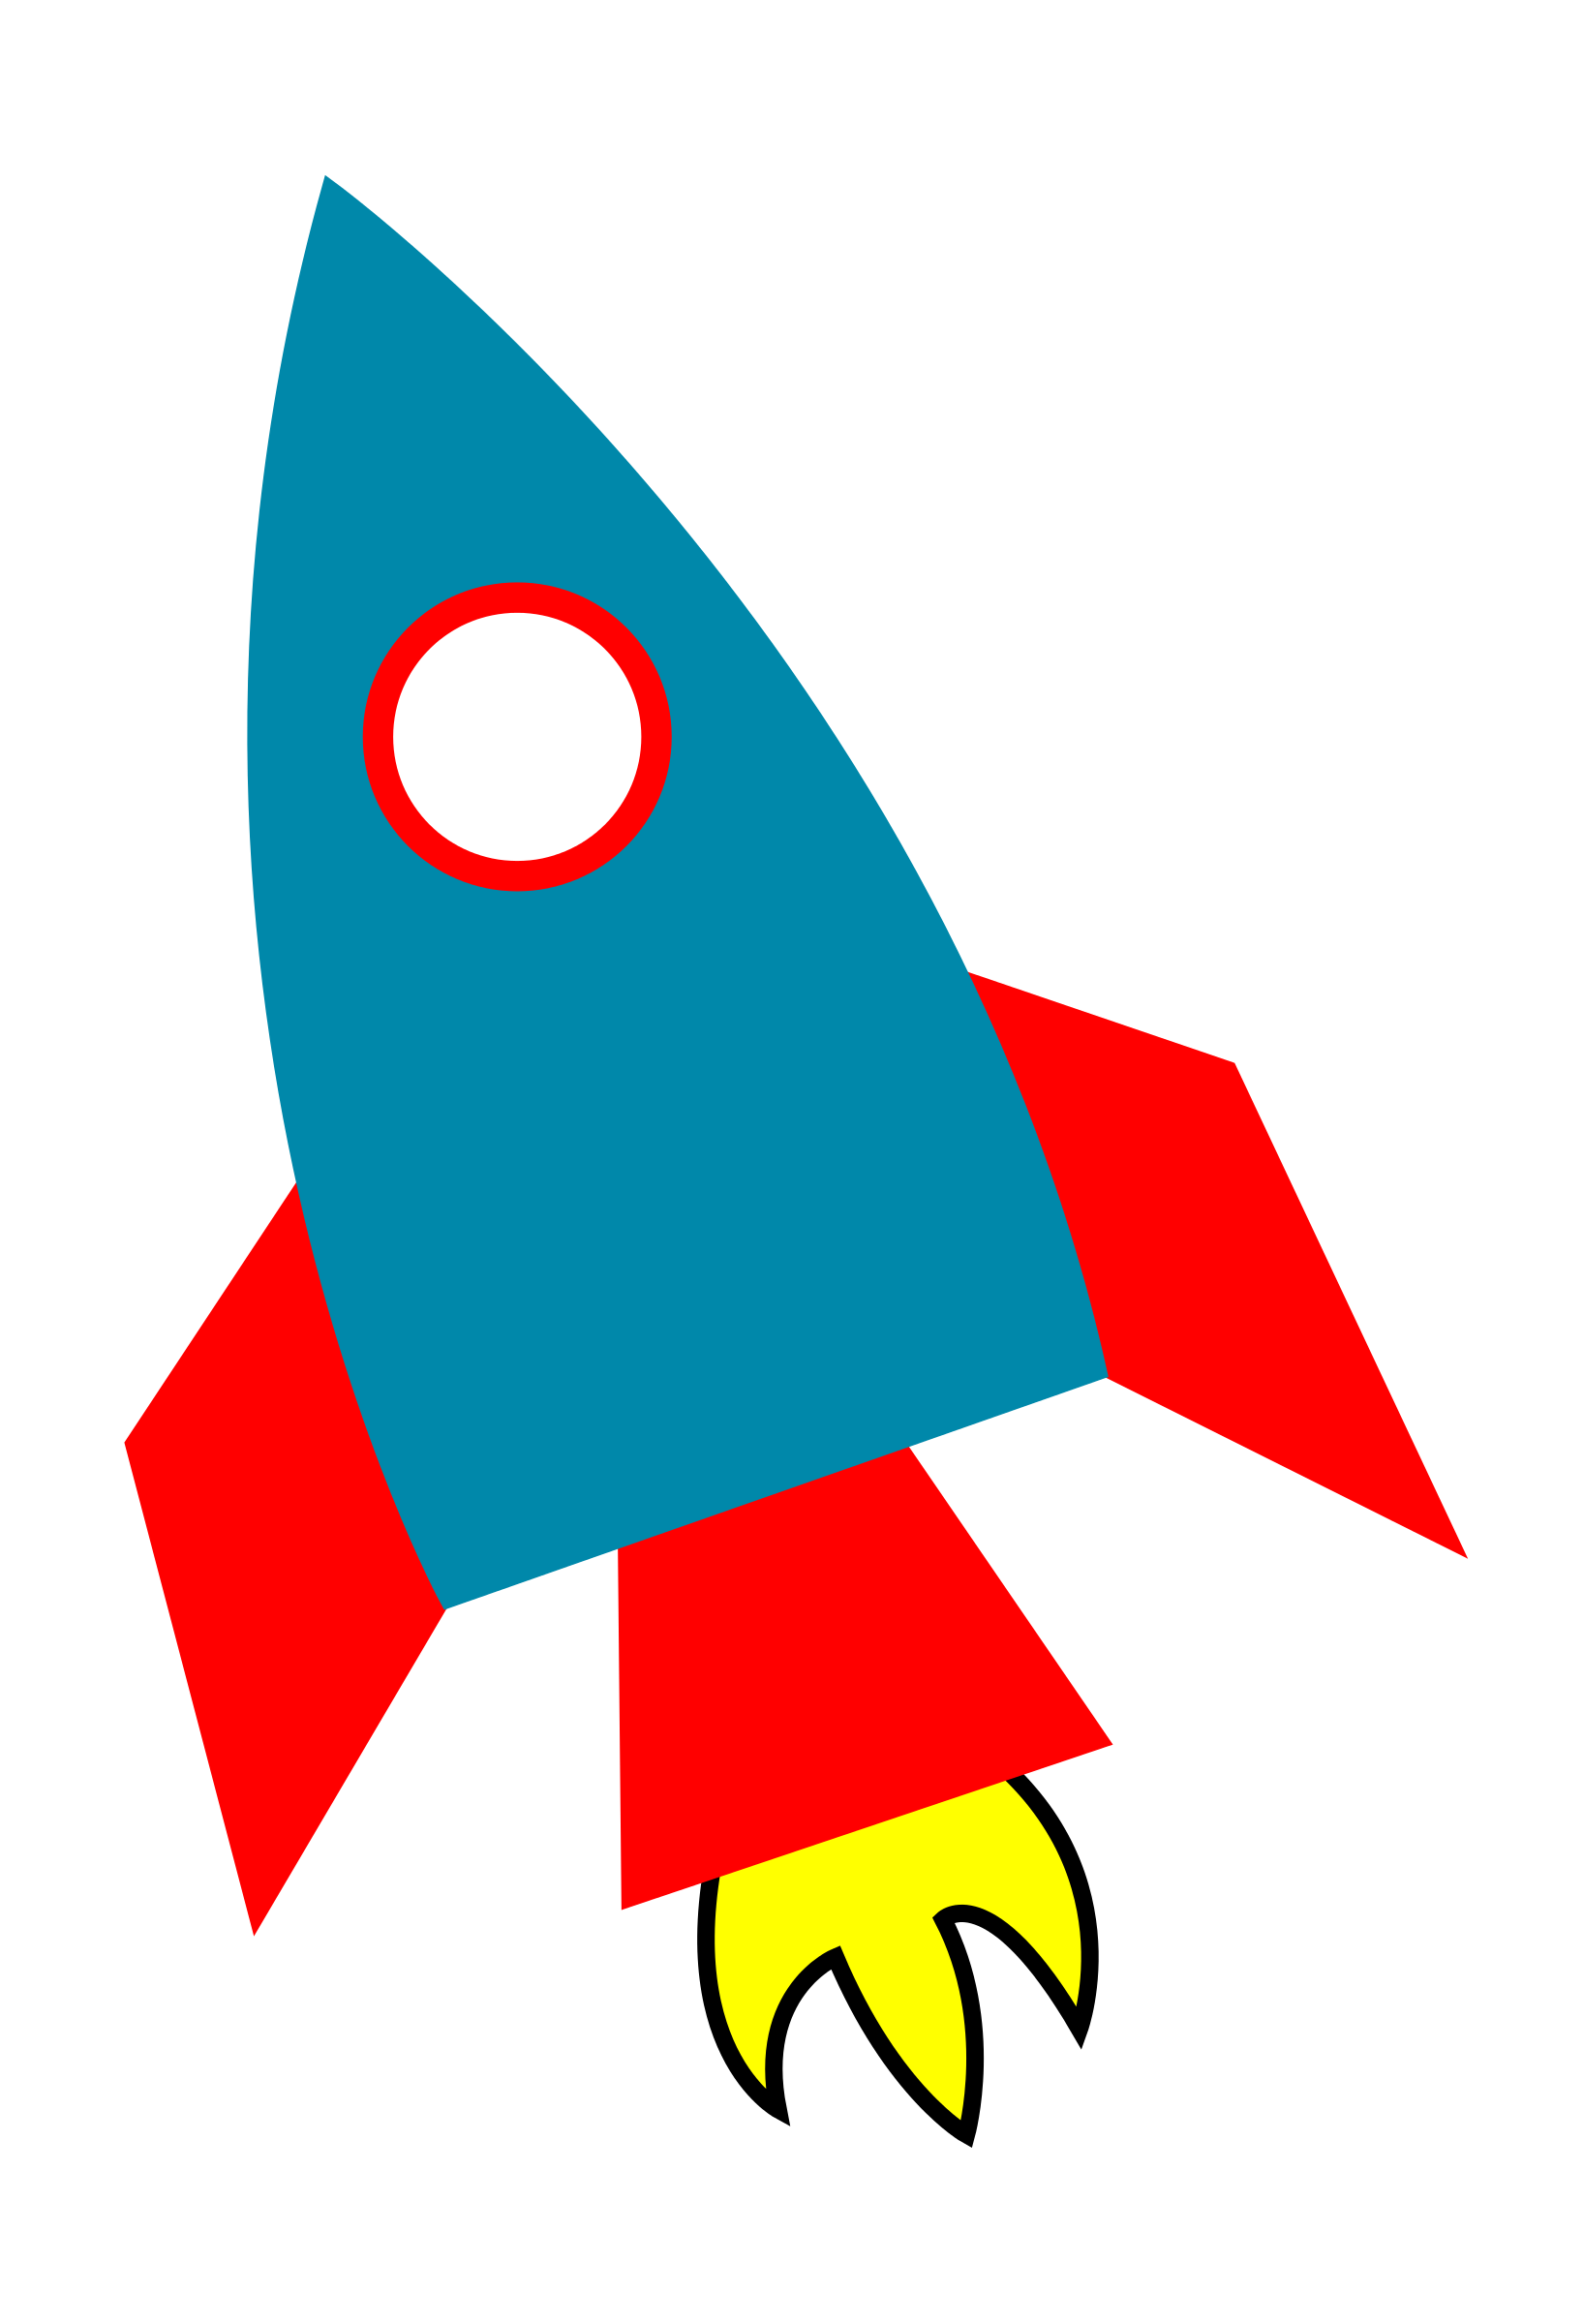 Space launch save our. Clipart rocket launching pad